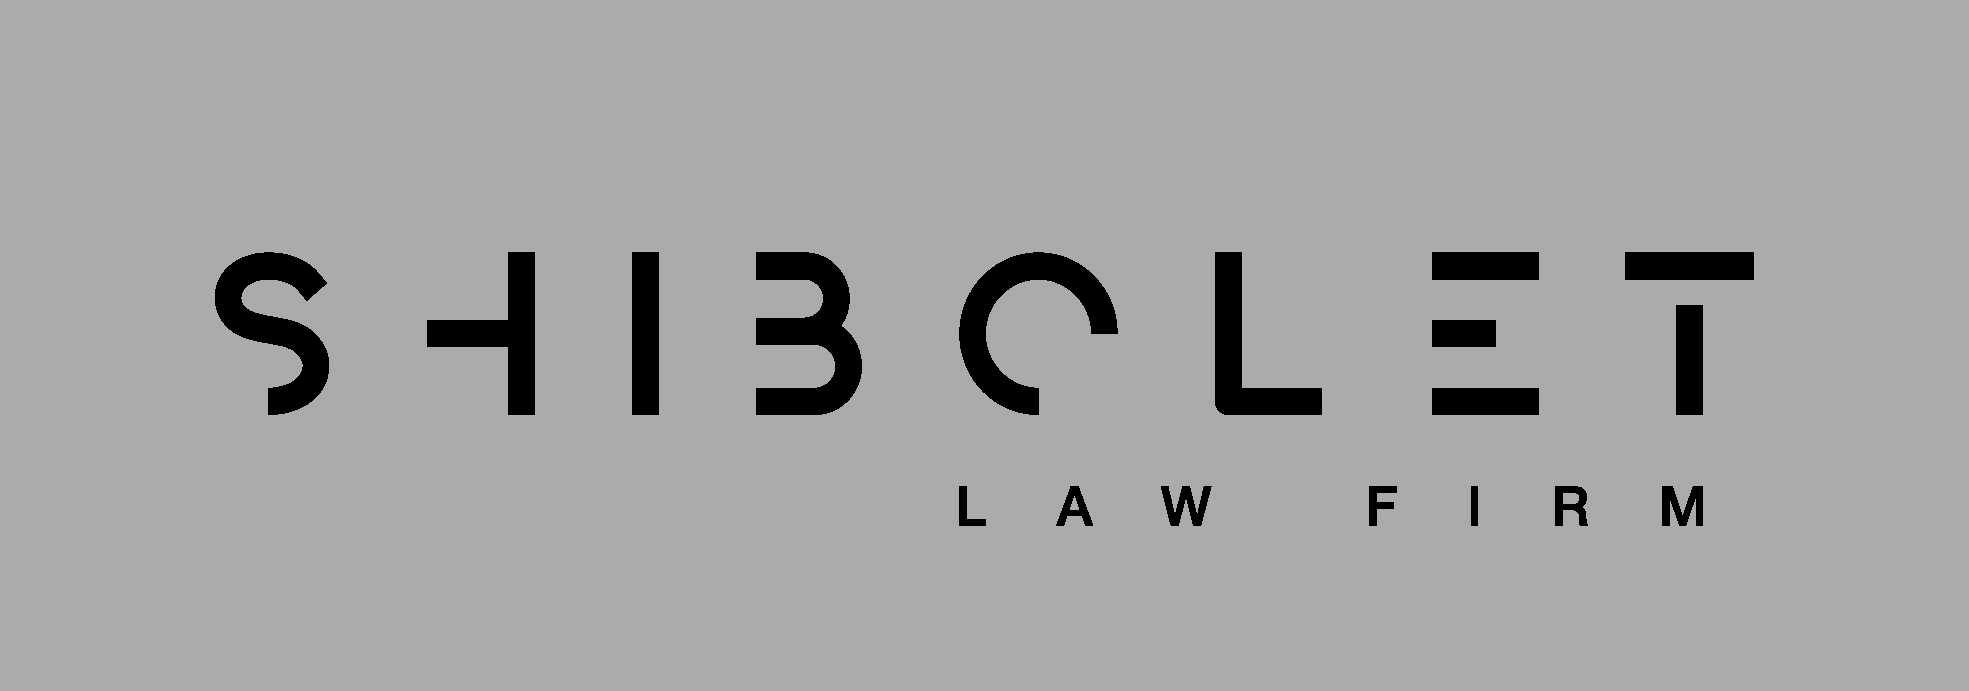 Shibolet & Co. Law Firm